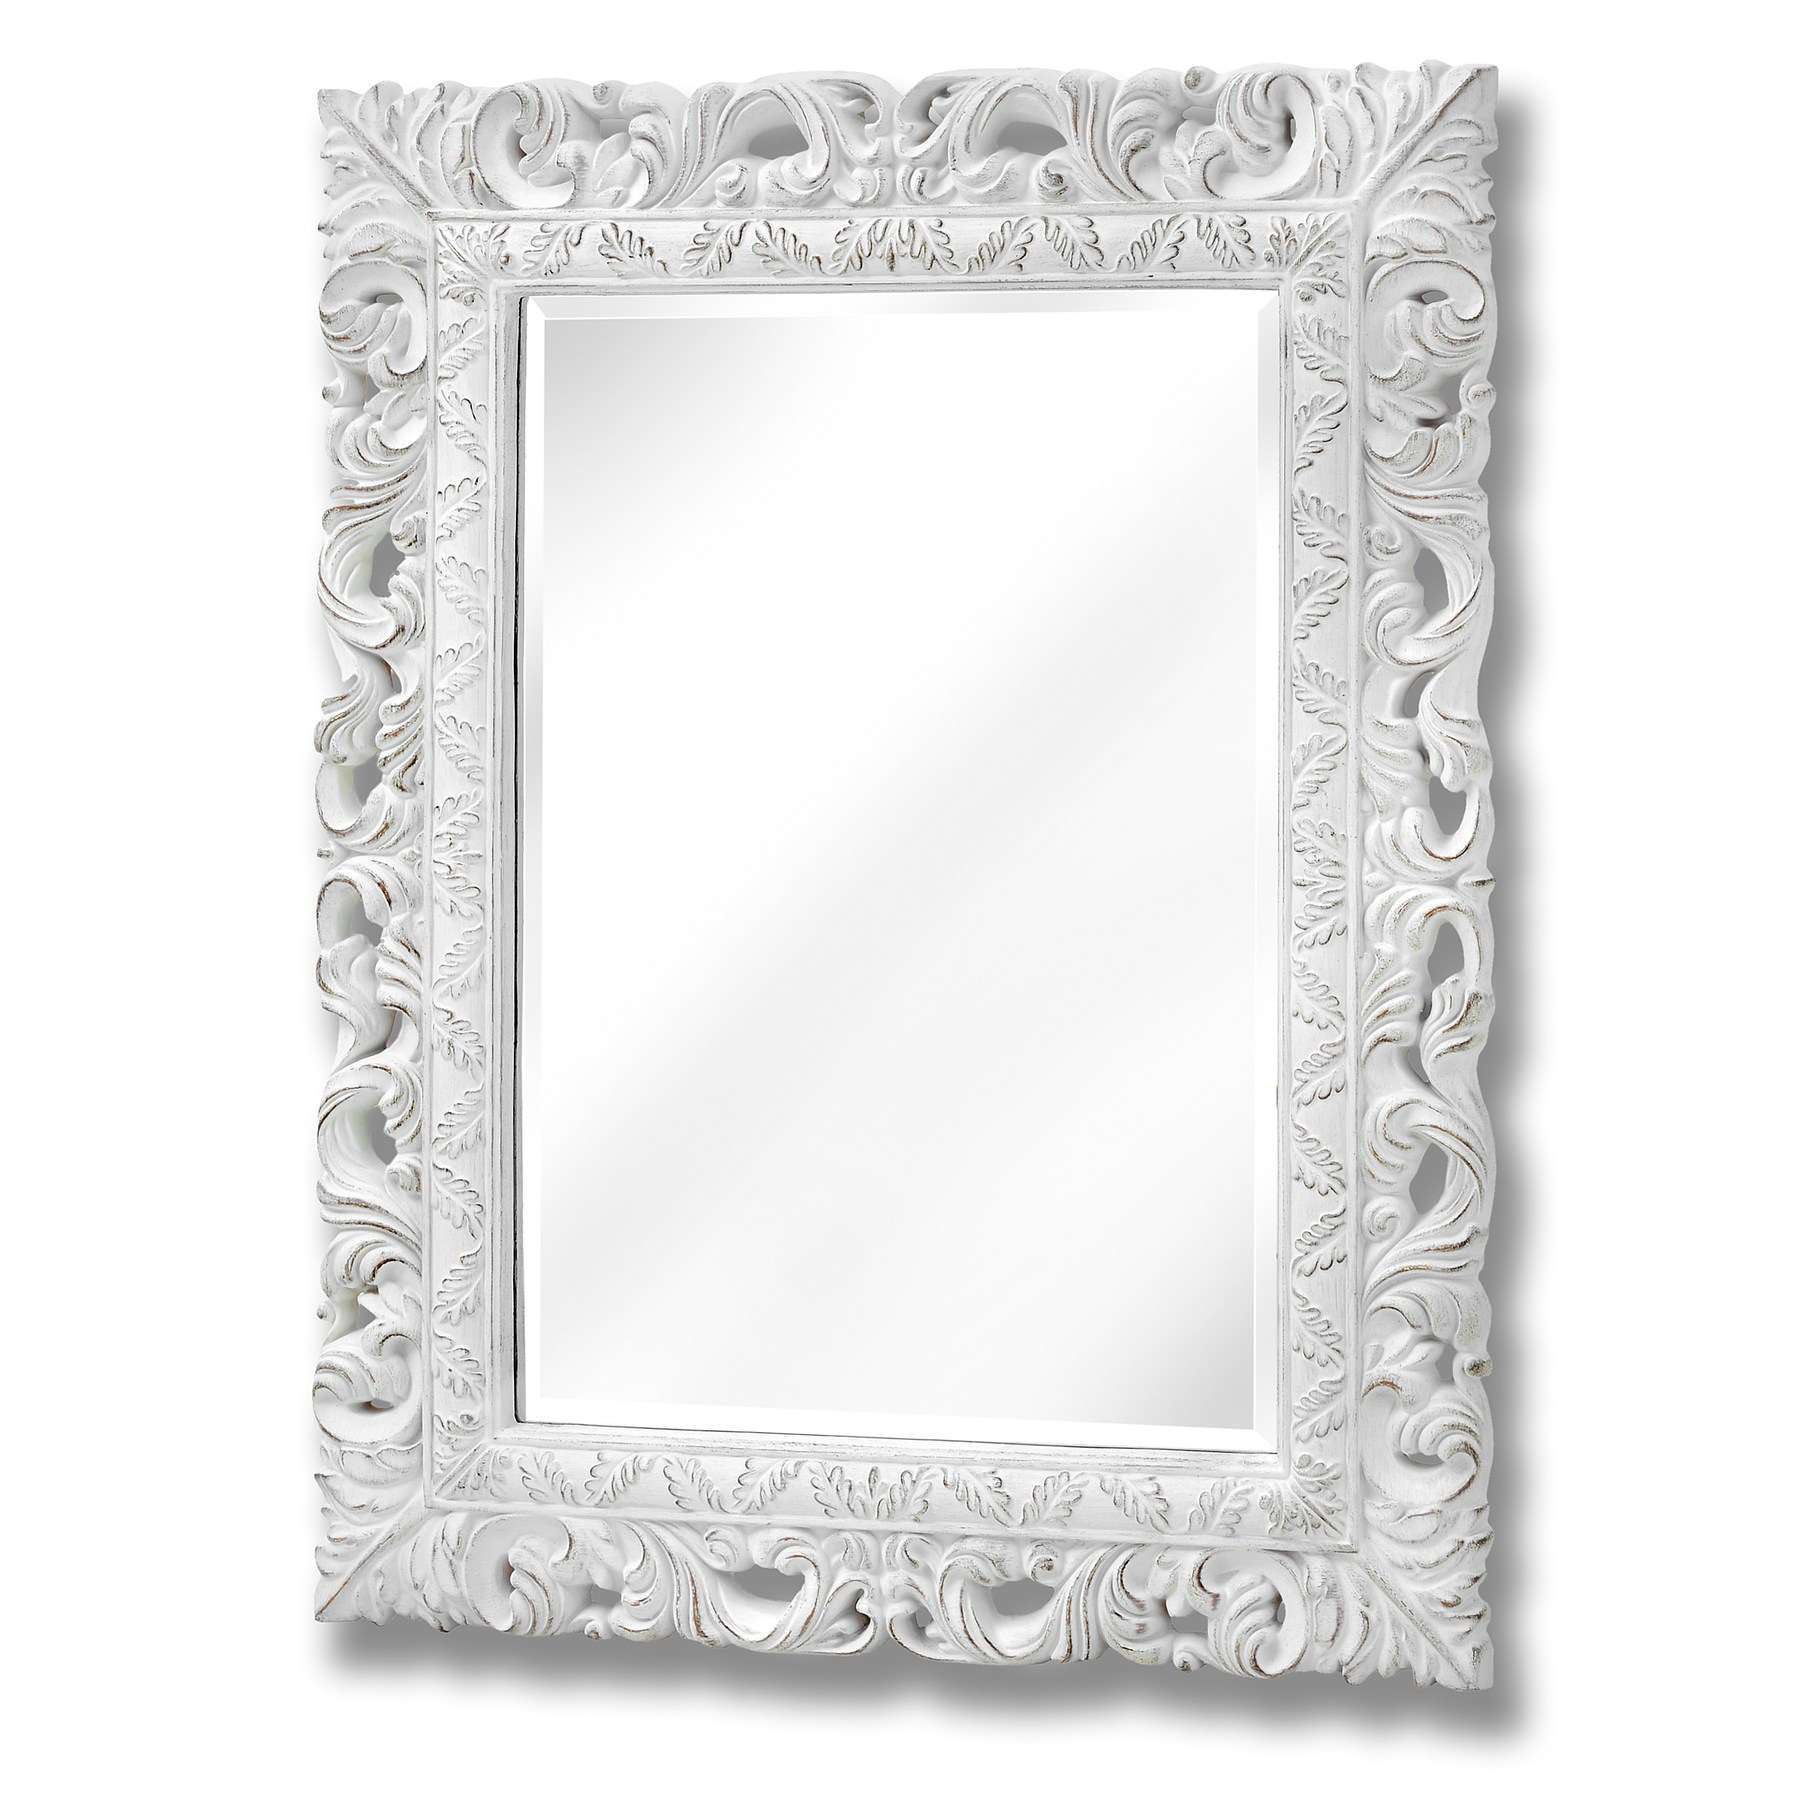 Antique White Ornate Leaf Wall Mirror Pitre Online